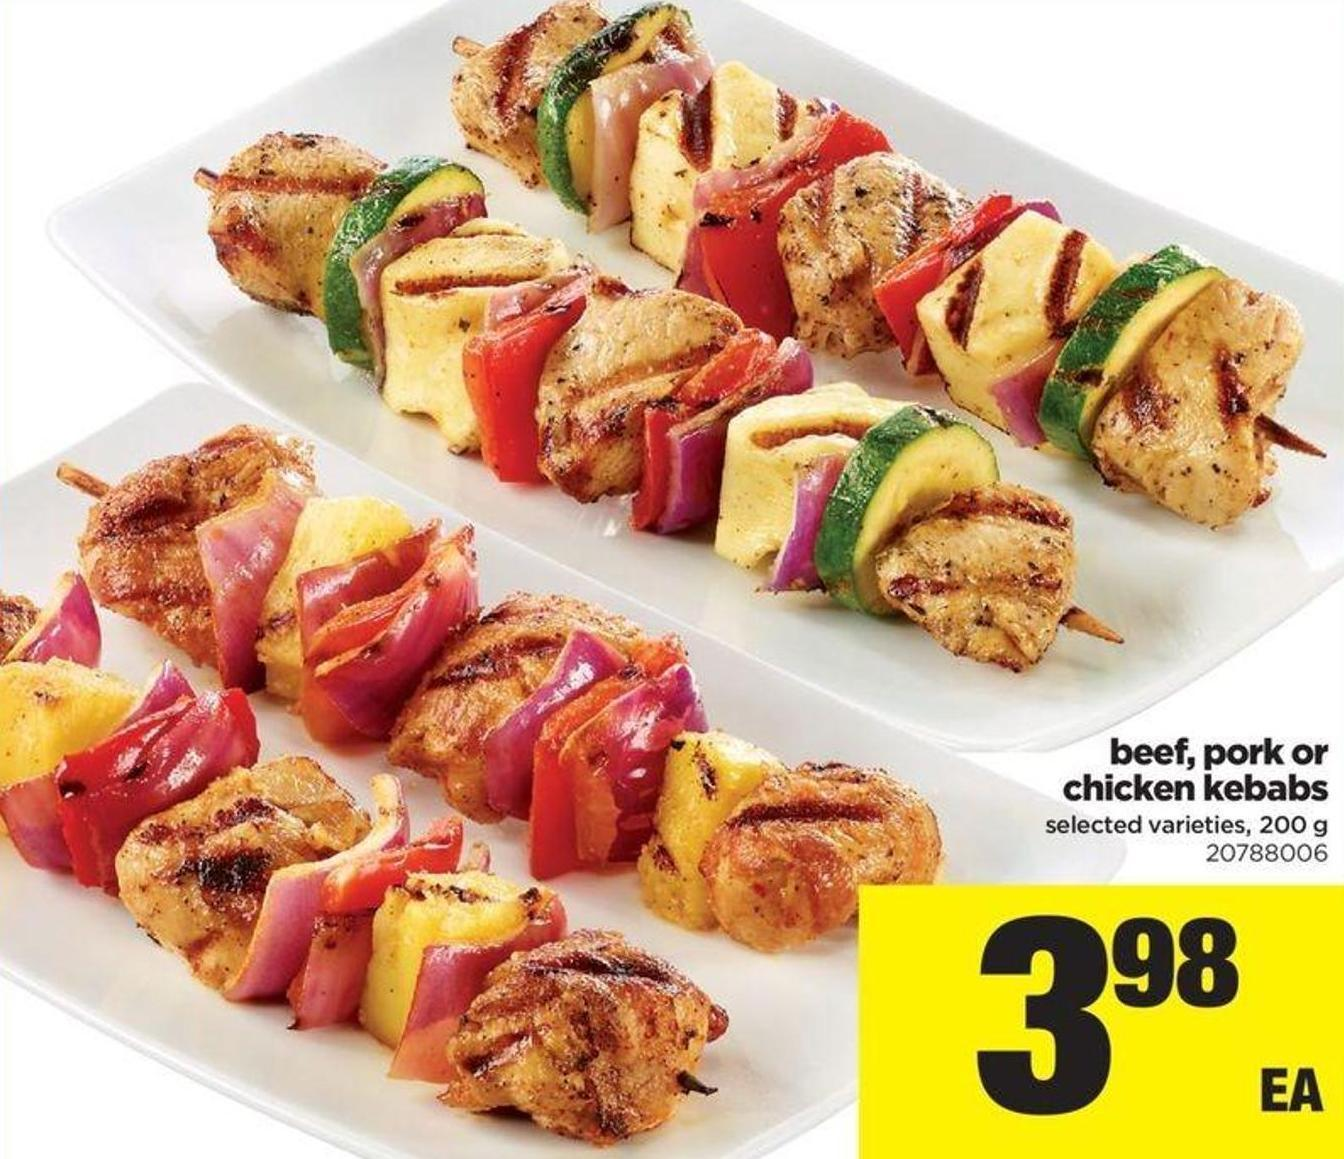 Beef - Pork Or Chicken Kebabs - 200 G